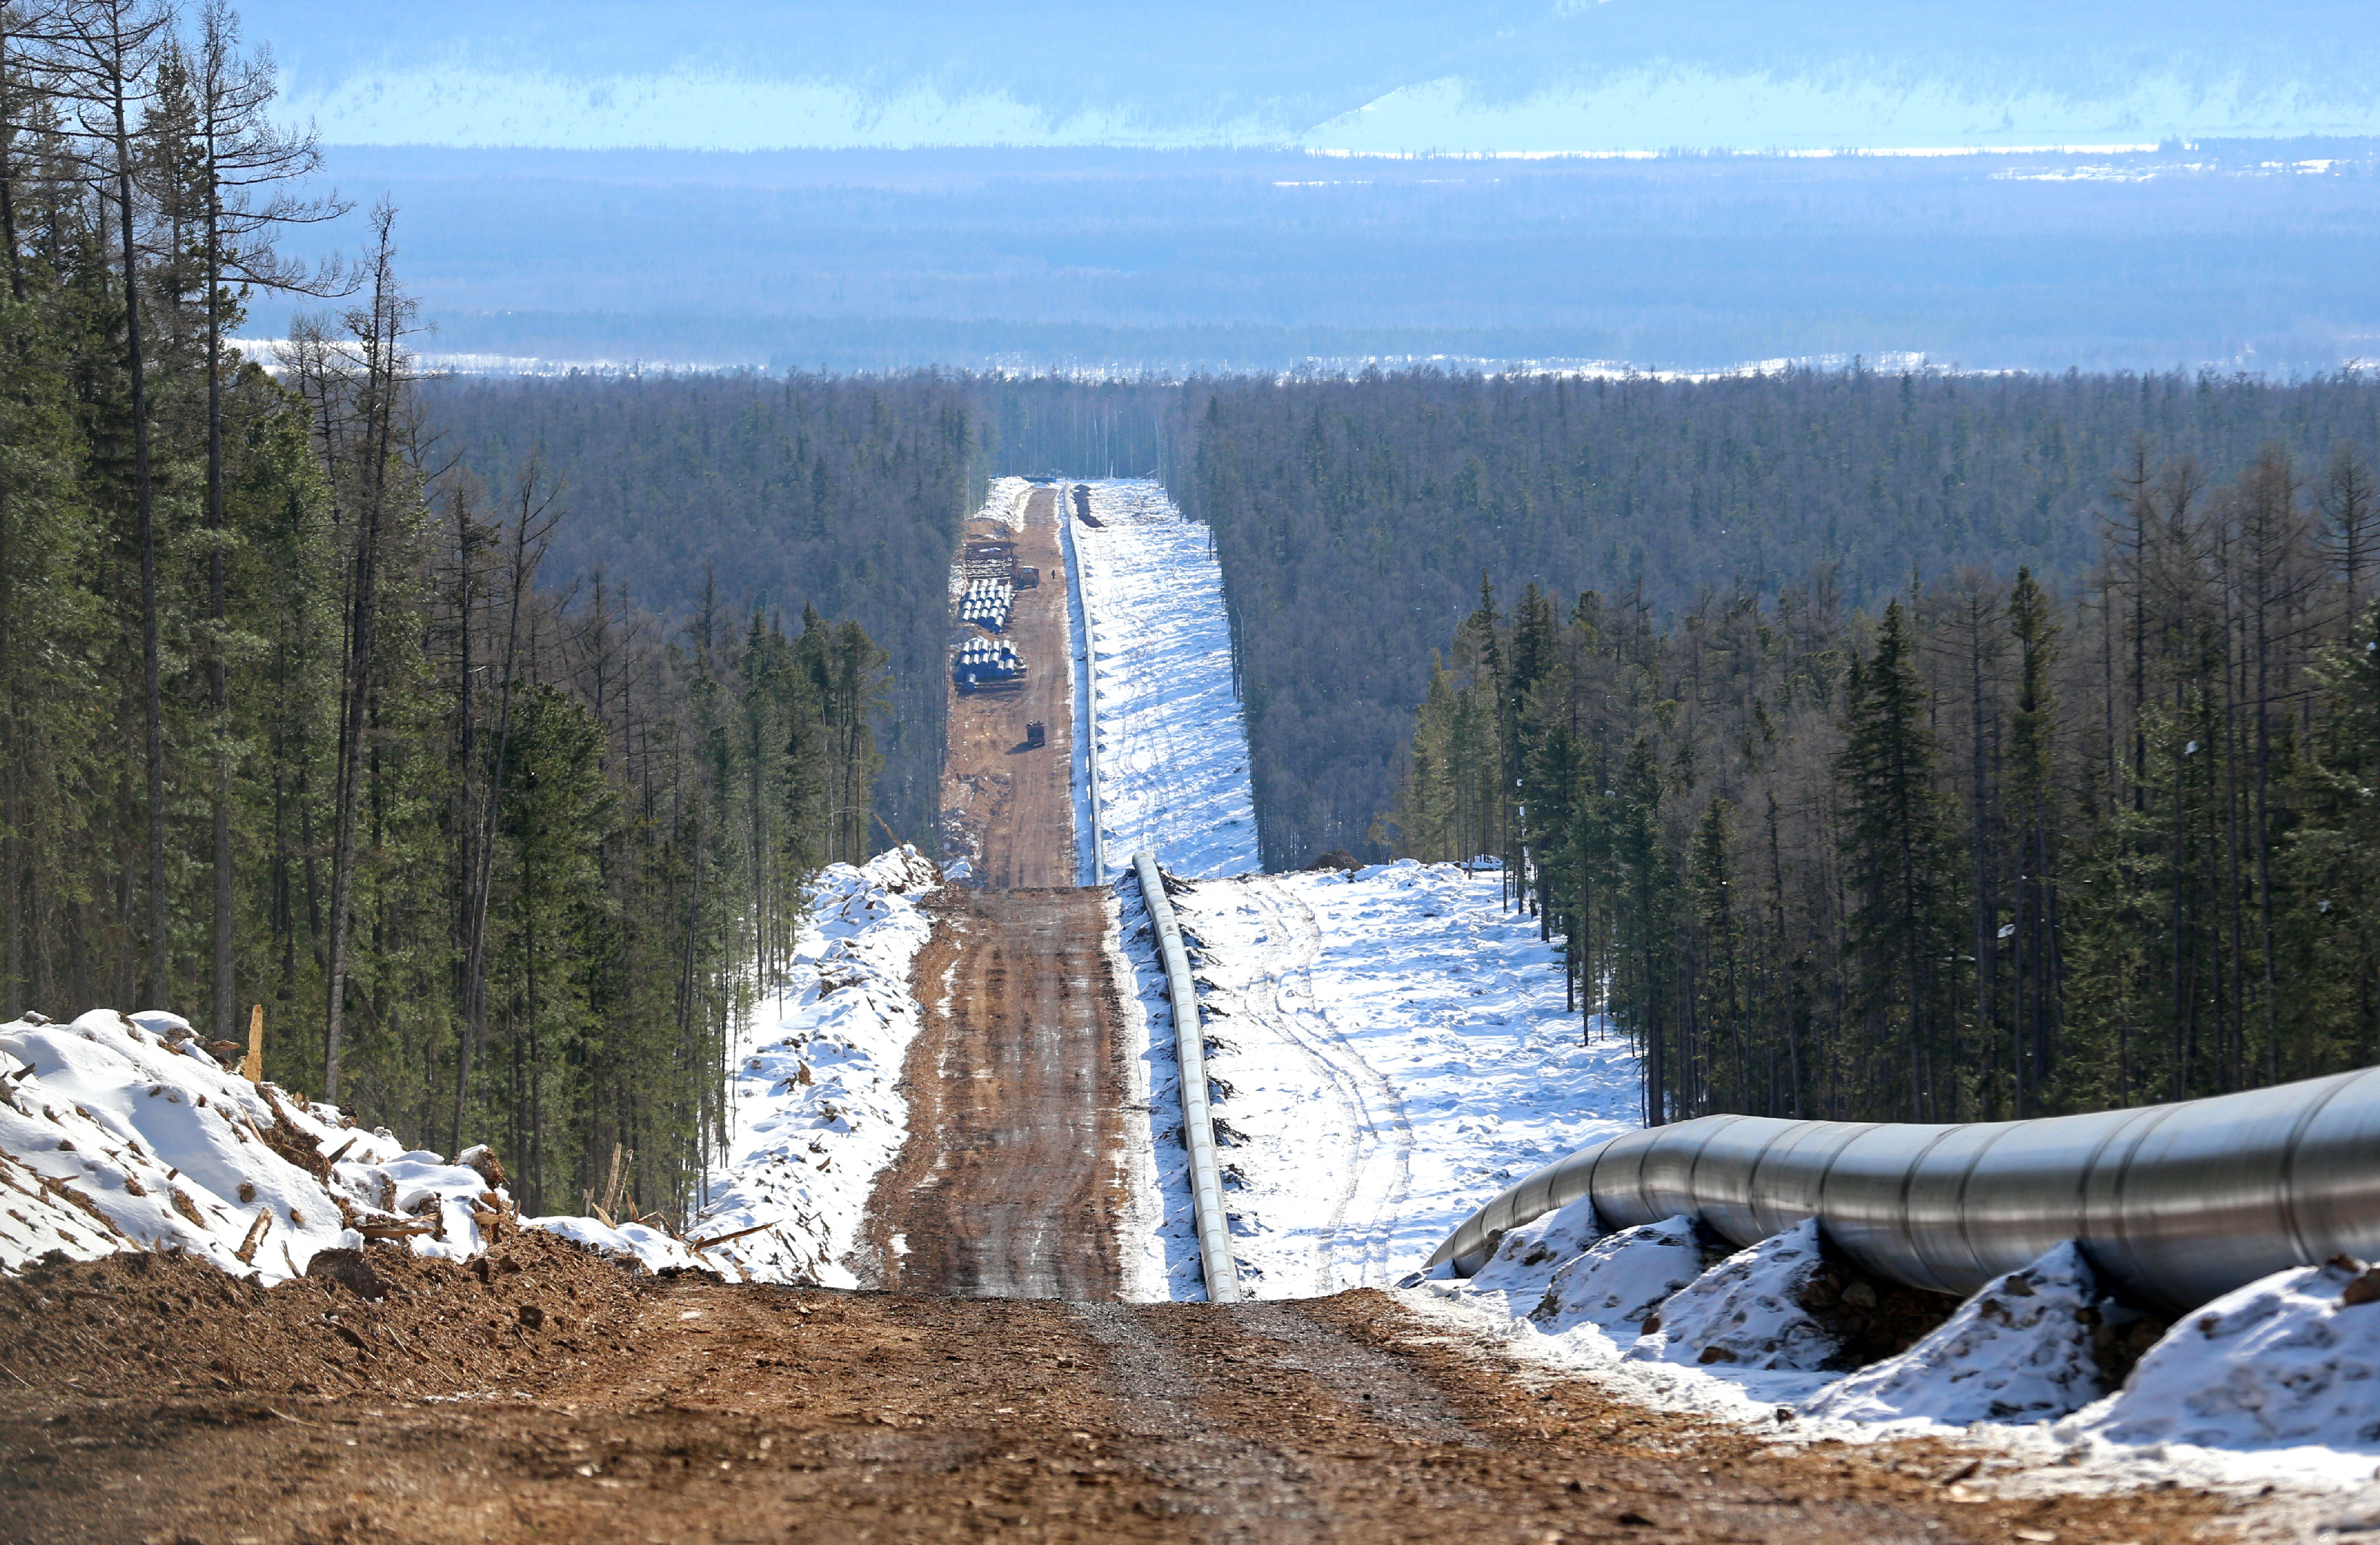 Russia's Power Of Siberia Pipeline May Slow Down LNG Supply To China